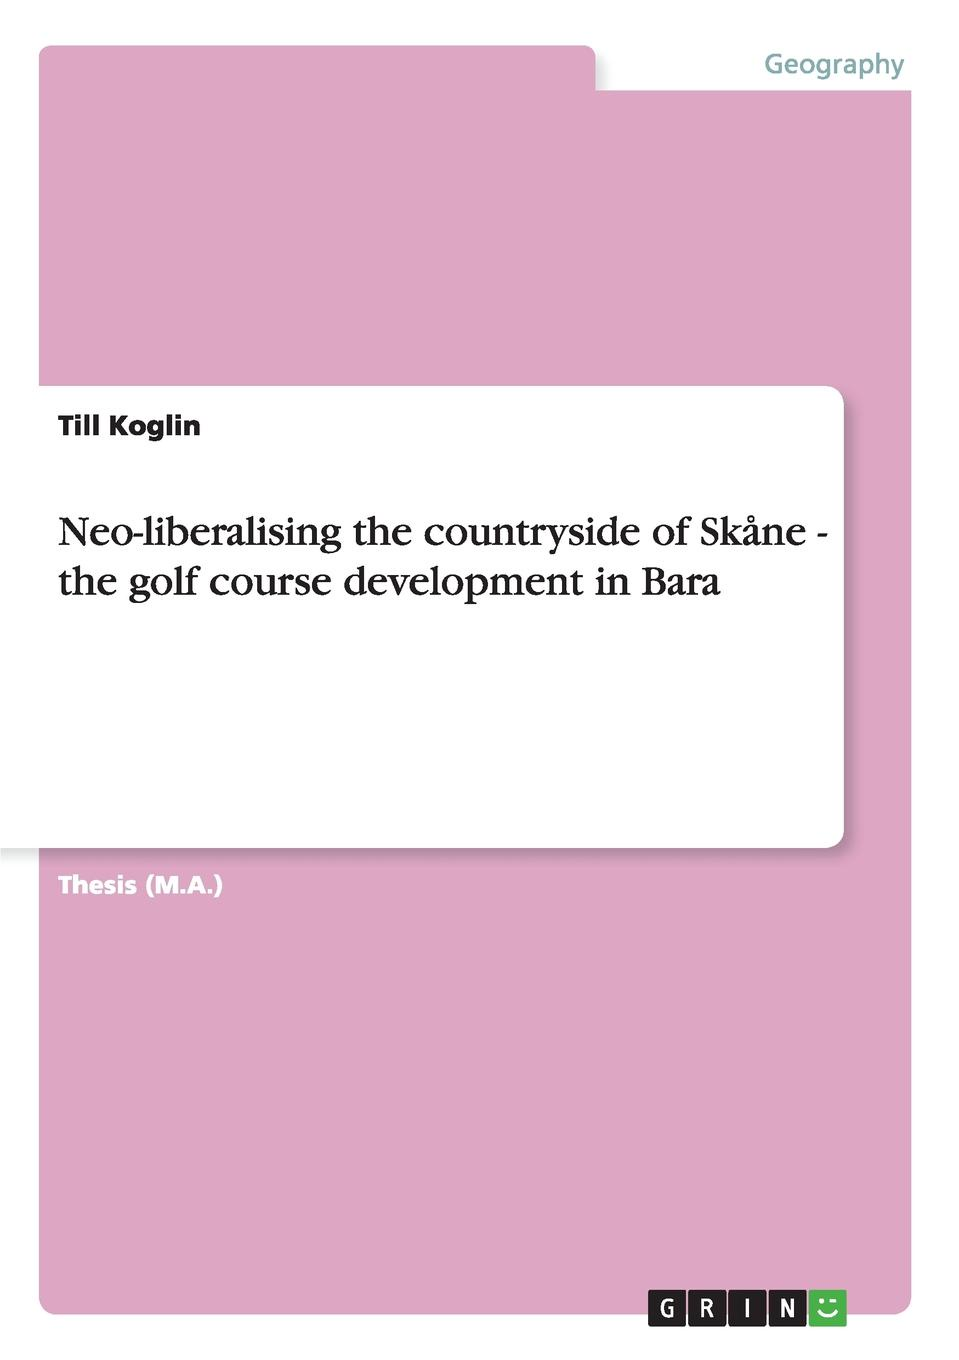 Till Koglin Neo-liberalising the countryside of Skane - the golf course development in Bara development banks in rural social change